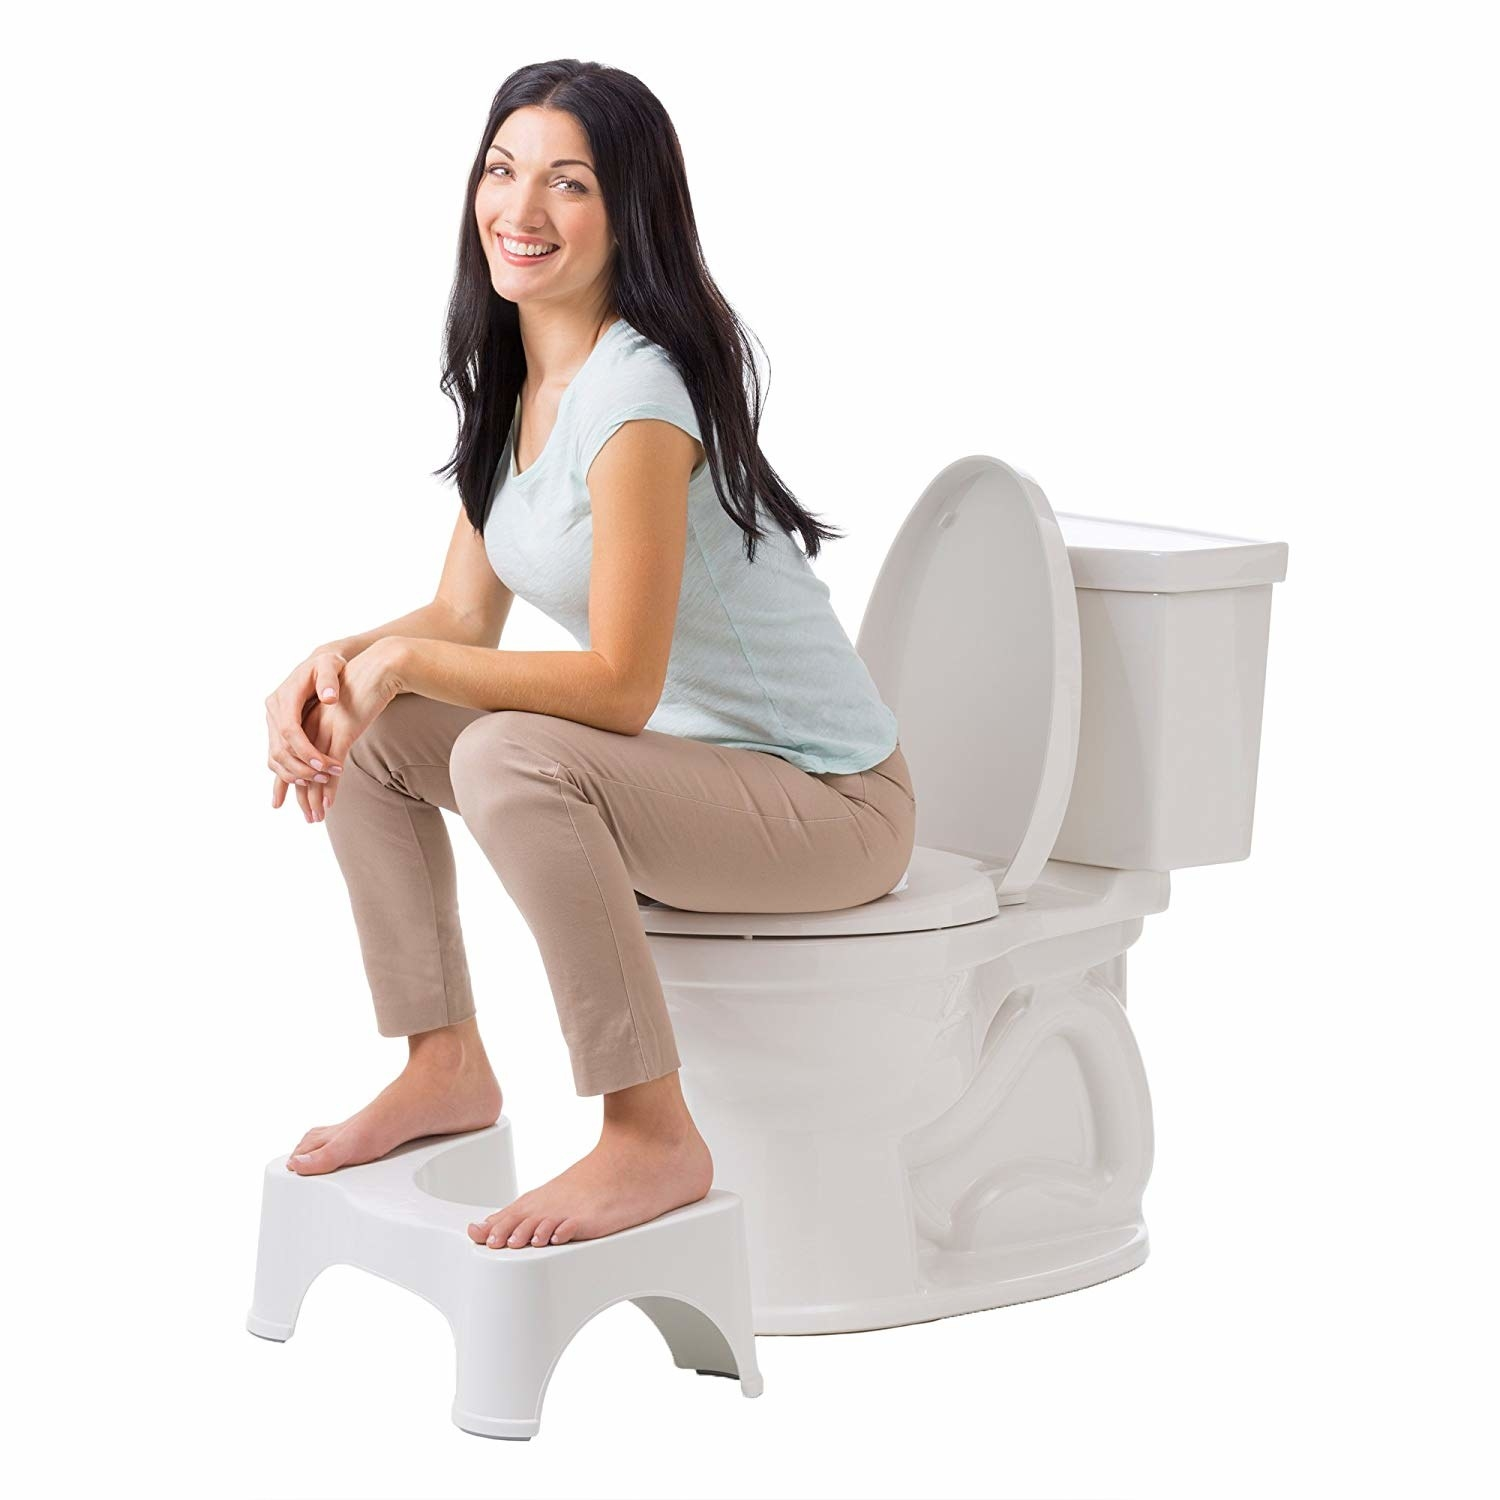 A model demonstrating how to rest your feet on the stool while you use the toilet